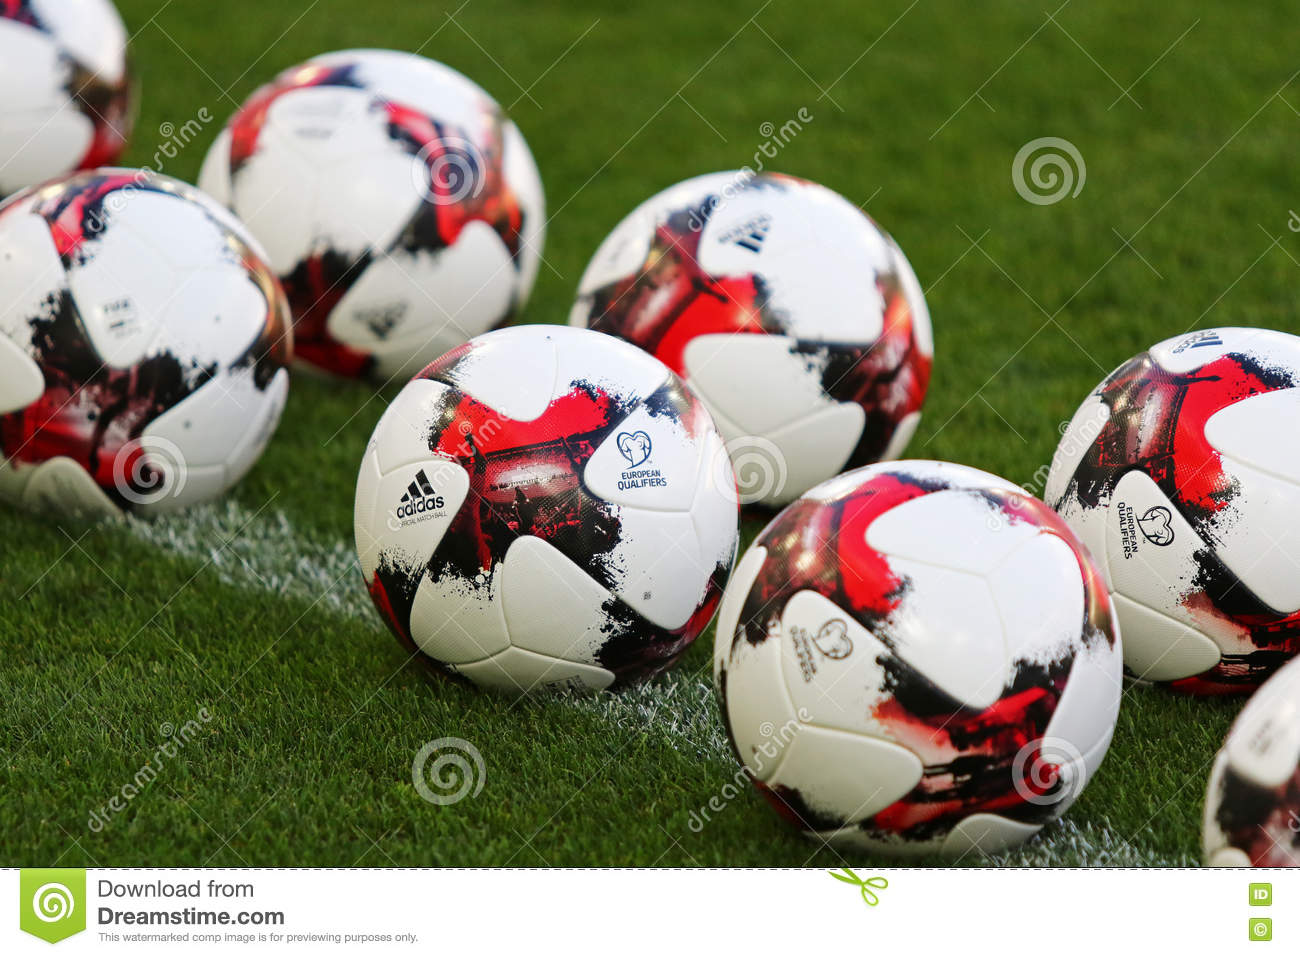 Top Football Ball World Cup 2018 - official-match-balls-fifa-world-cup-kyiv-ukraine-august-qualifying-matches-grass-nsc-olympic-stadium-open-76668788  Pictures_362628 .jpg